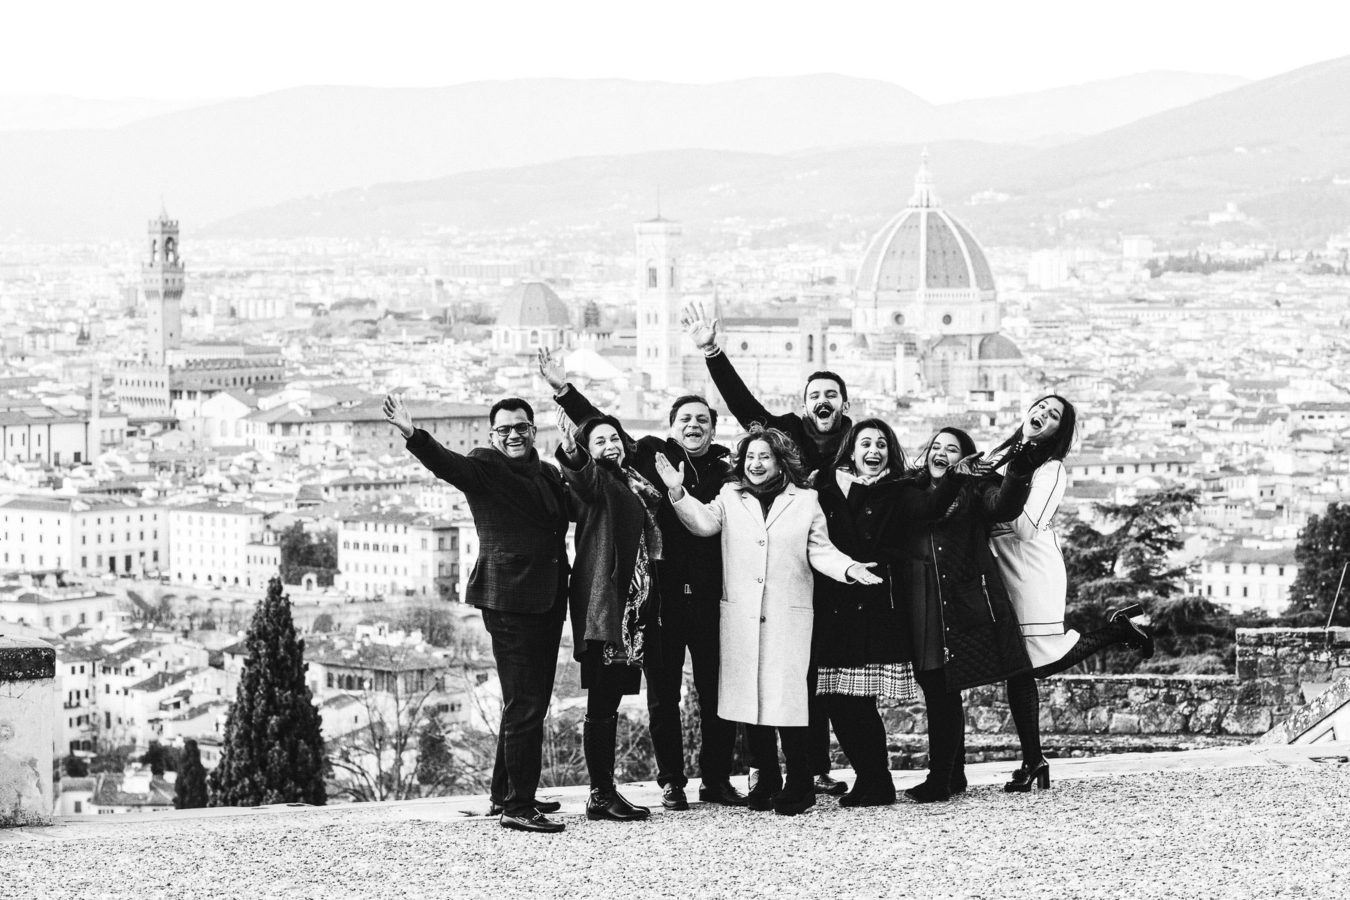 Exciting winter family reunion in Florence at San Miniato al Monte near Piazzale Michelangelo with breathtaking view of the city as background